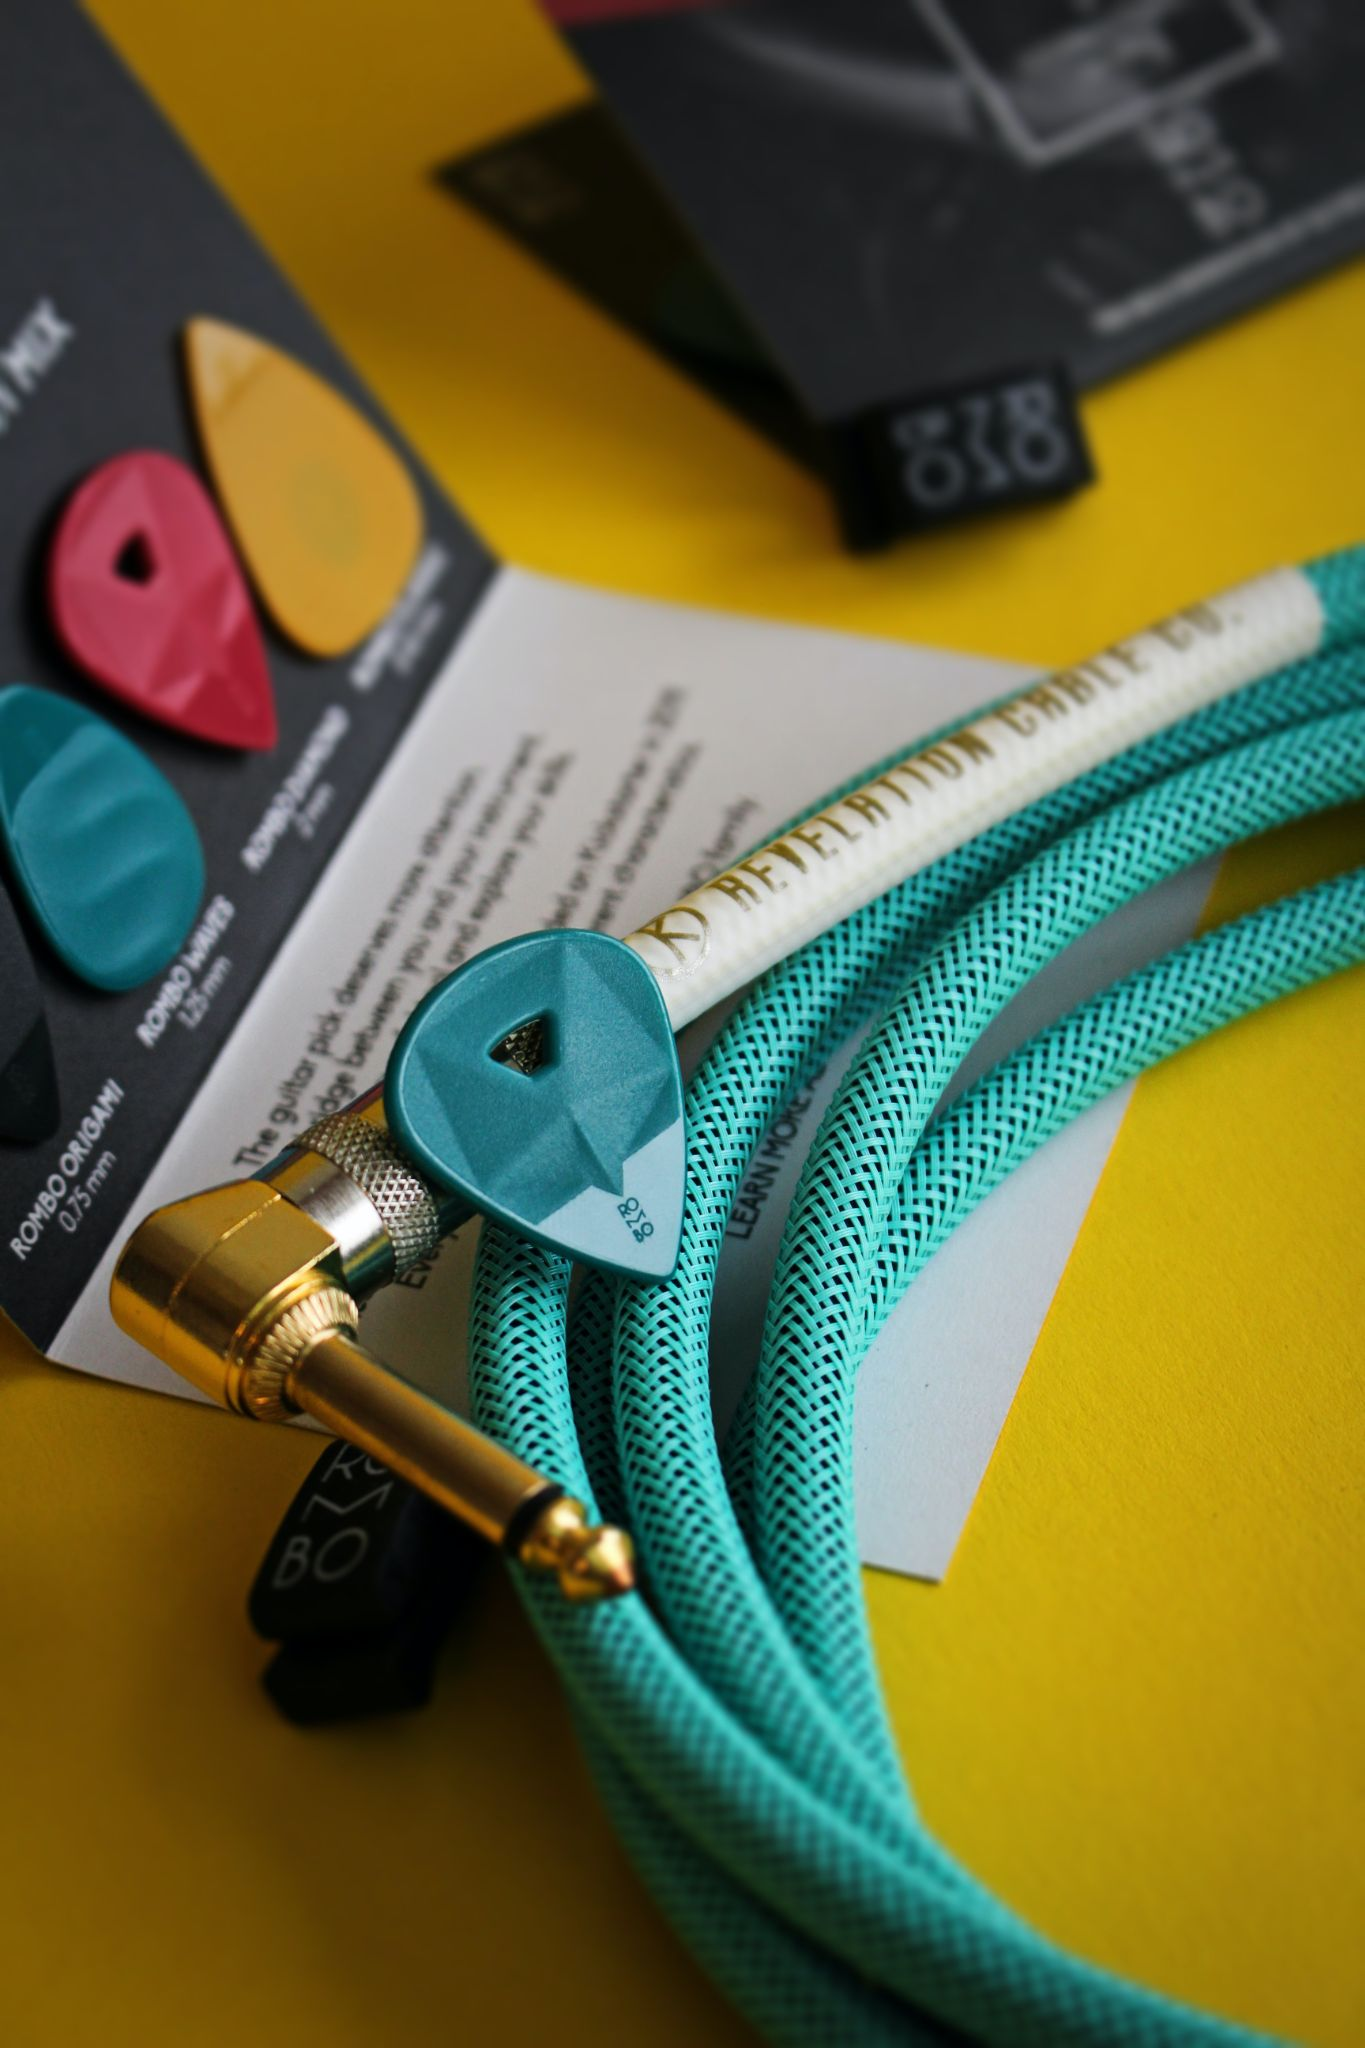 Get The Best Expandable Hose For Your Garden In 2021